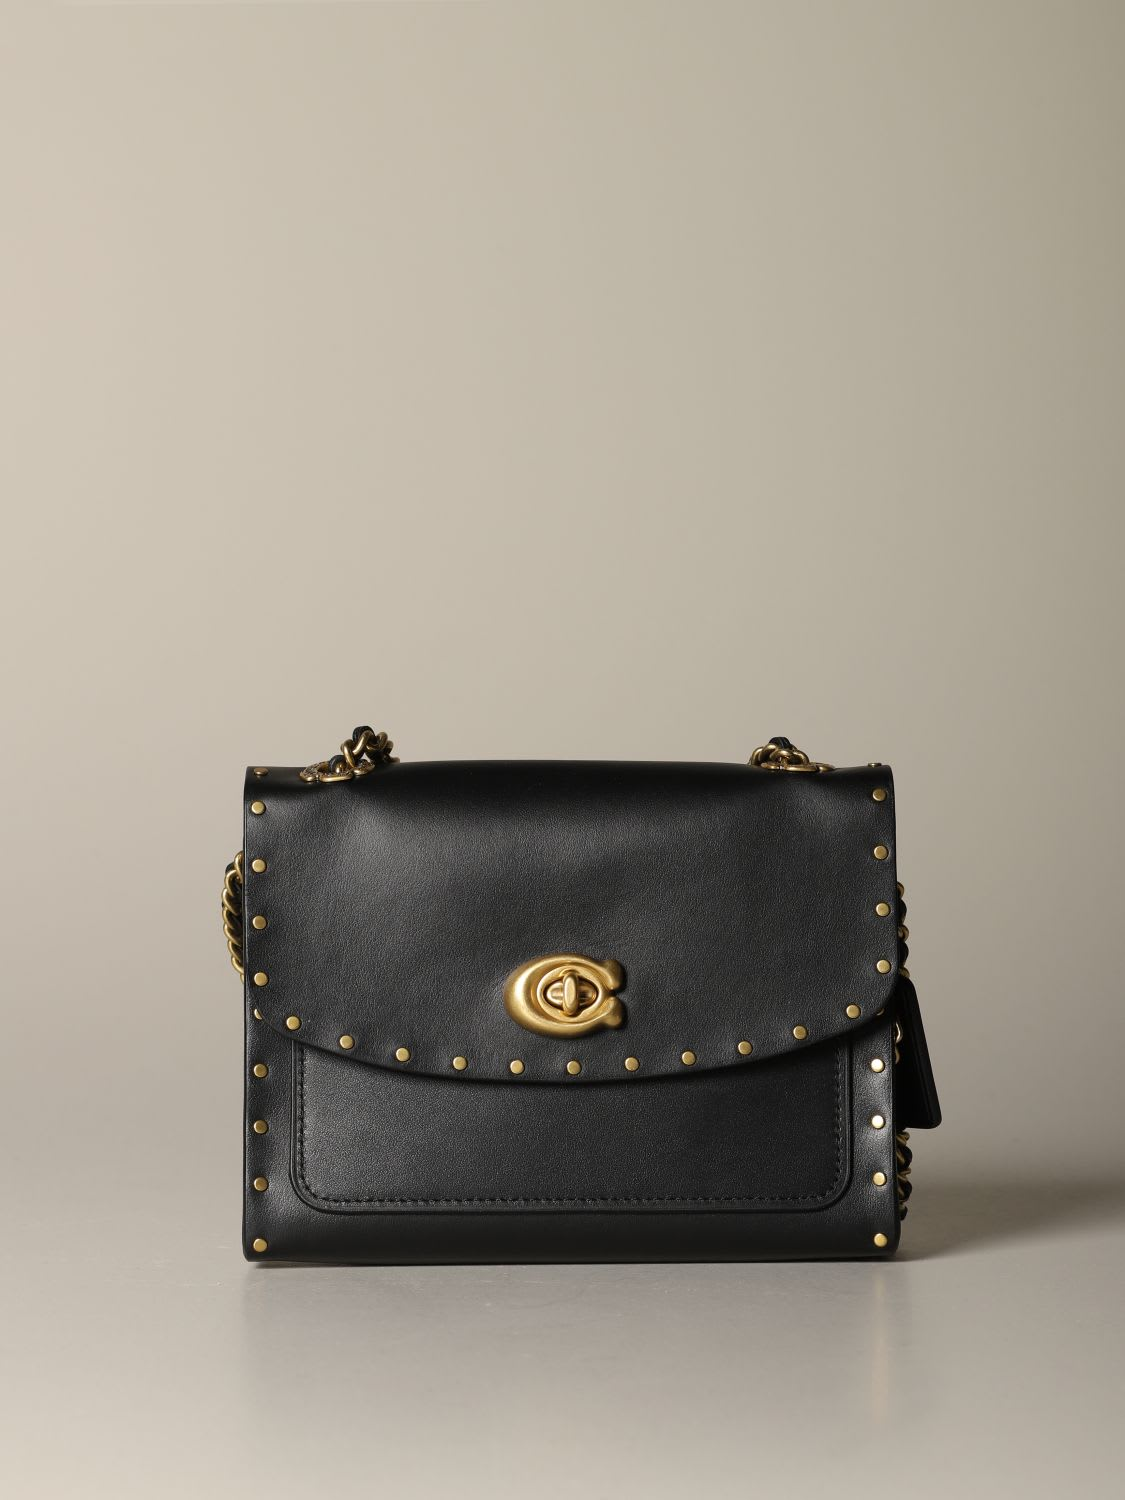 Coach Crossbody Bags Parker 18 Coach Bag In Leather With Rivets